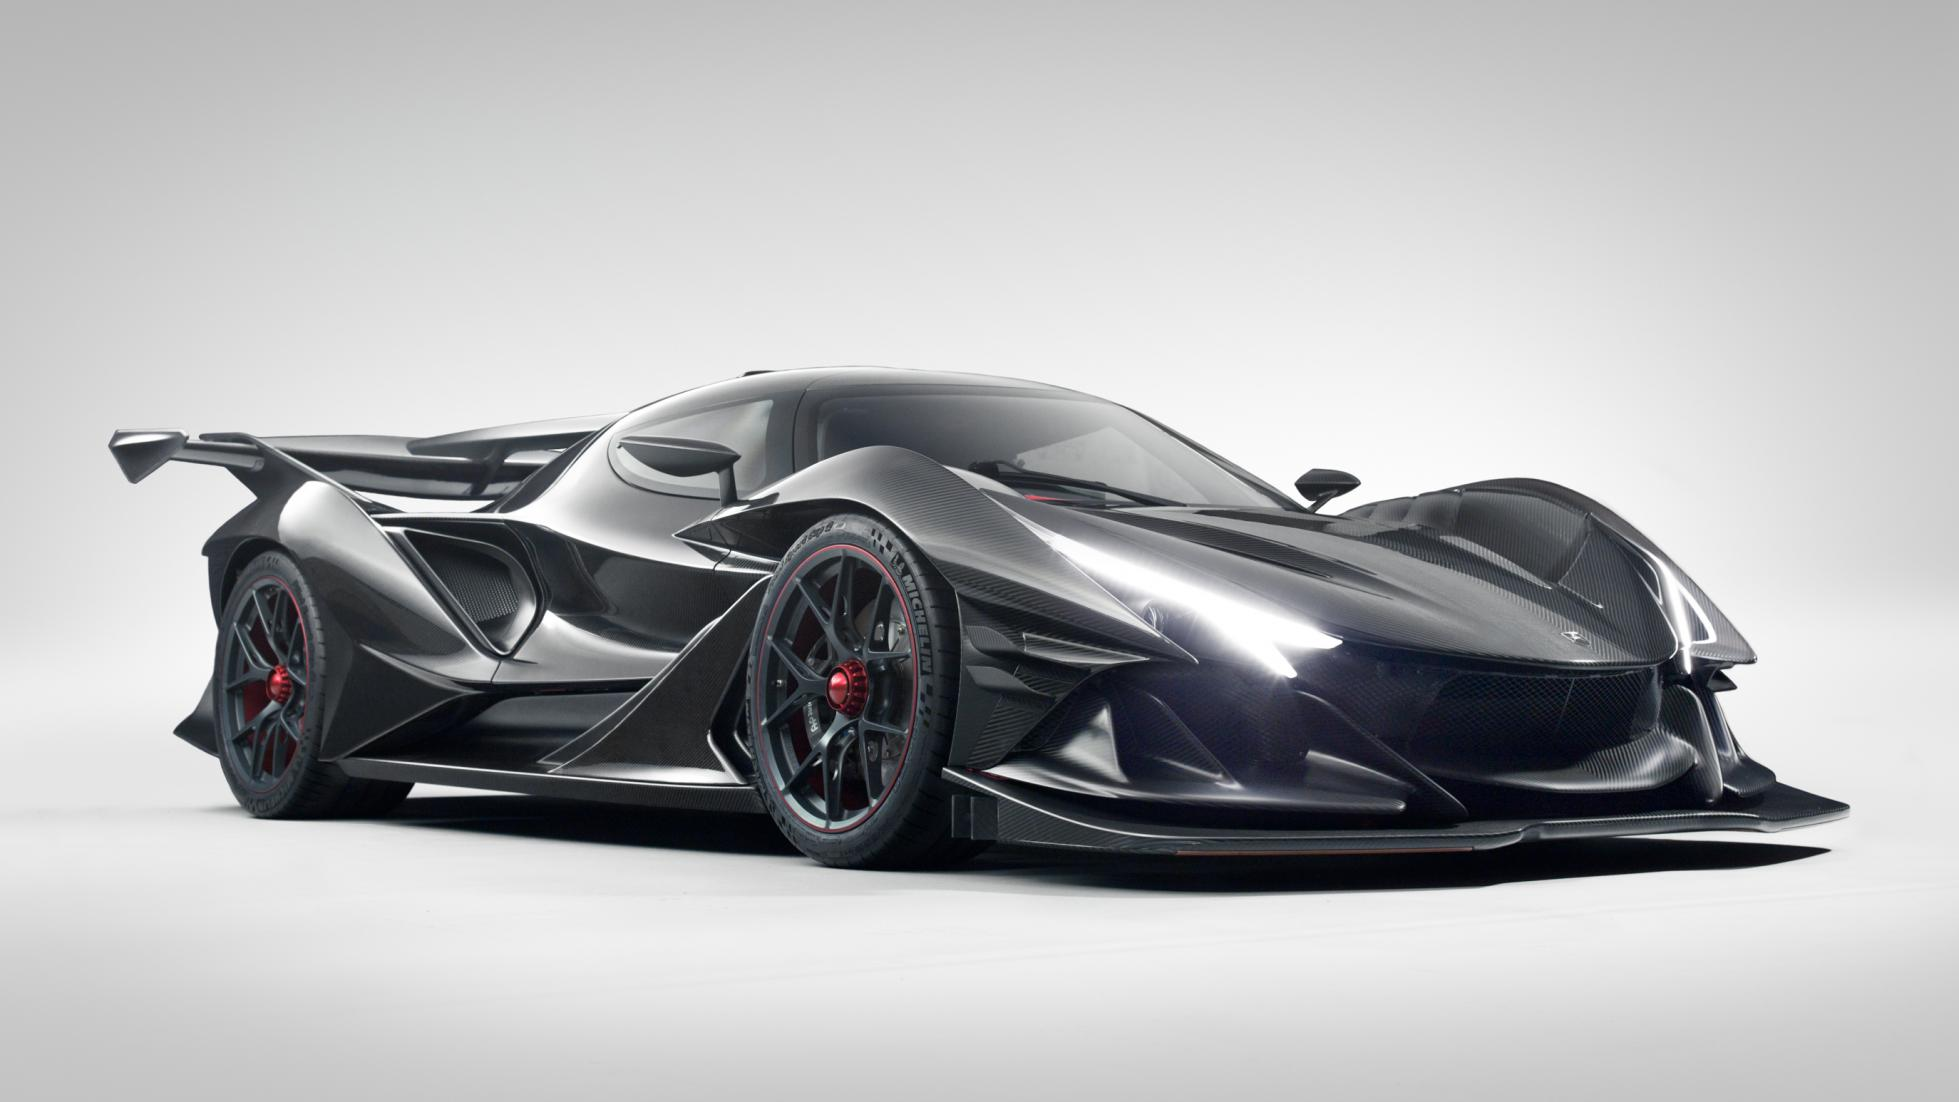 This $2.7 million track-only hypercar will lure you to the dark side